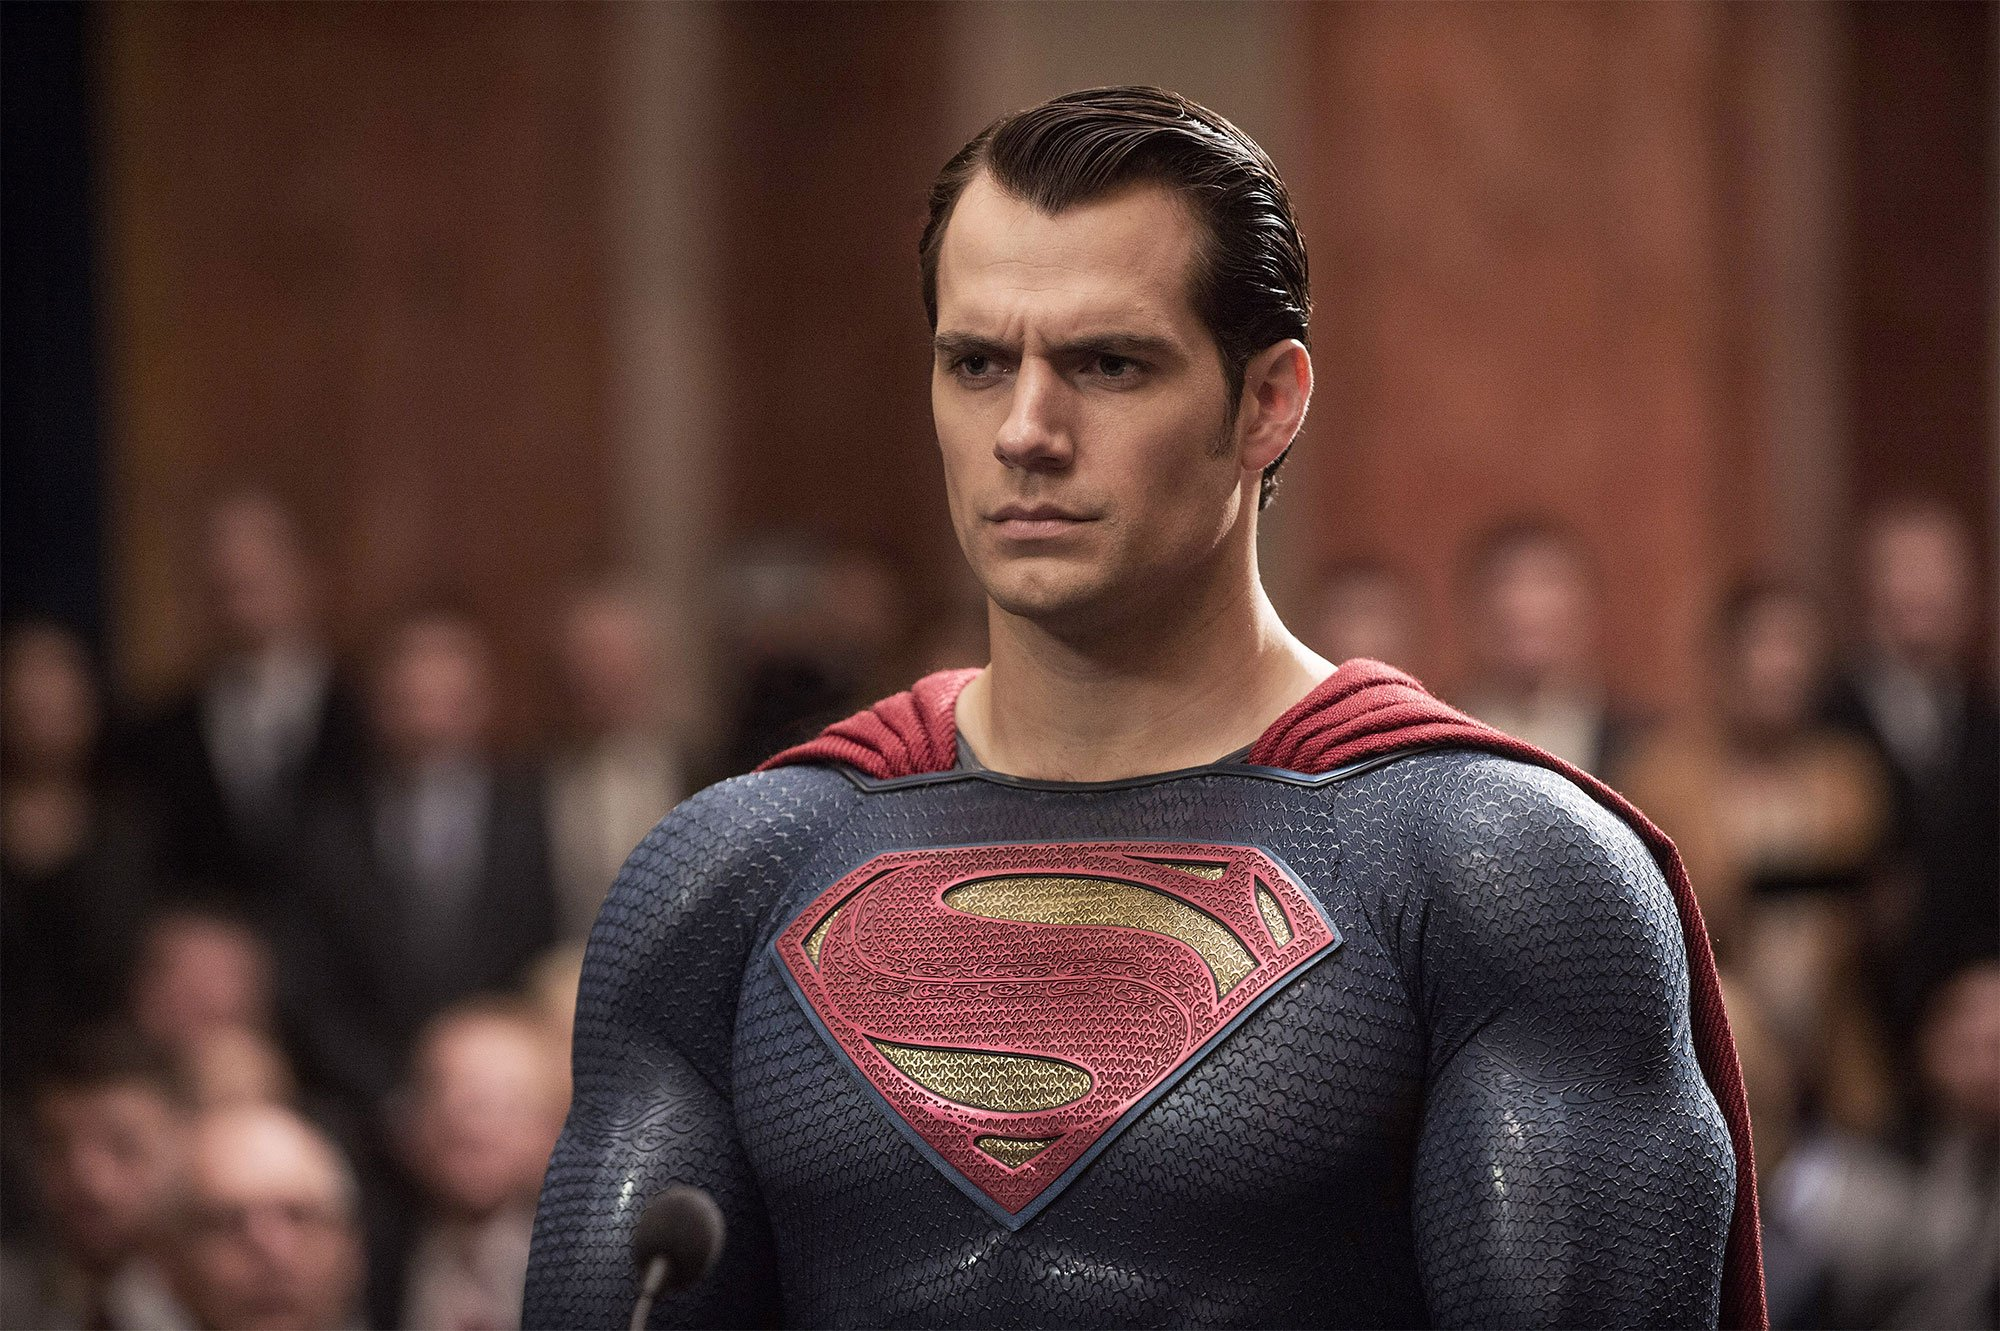 Is Henry Cavill Done Playing Superman? Reports Suggest He's Hanging Up the Cape for Good